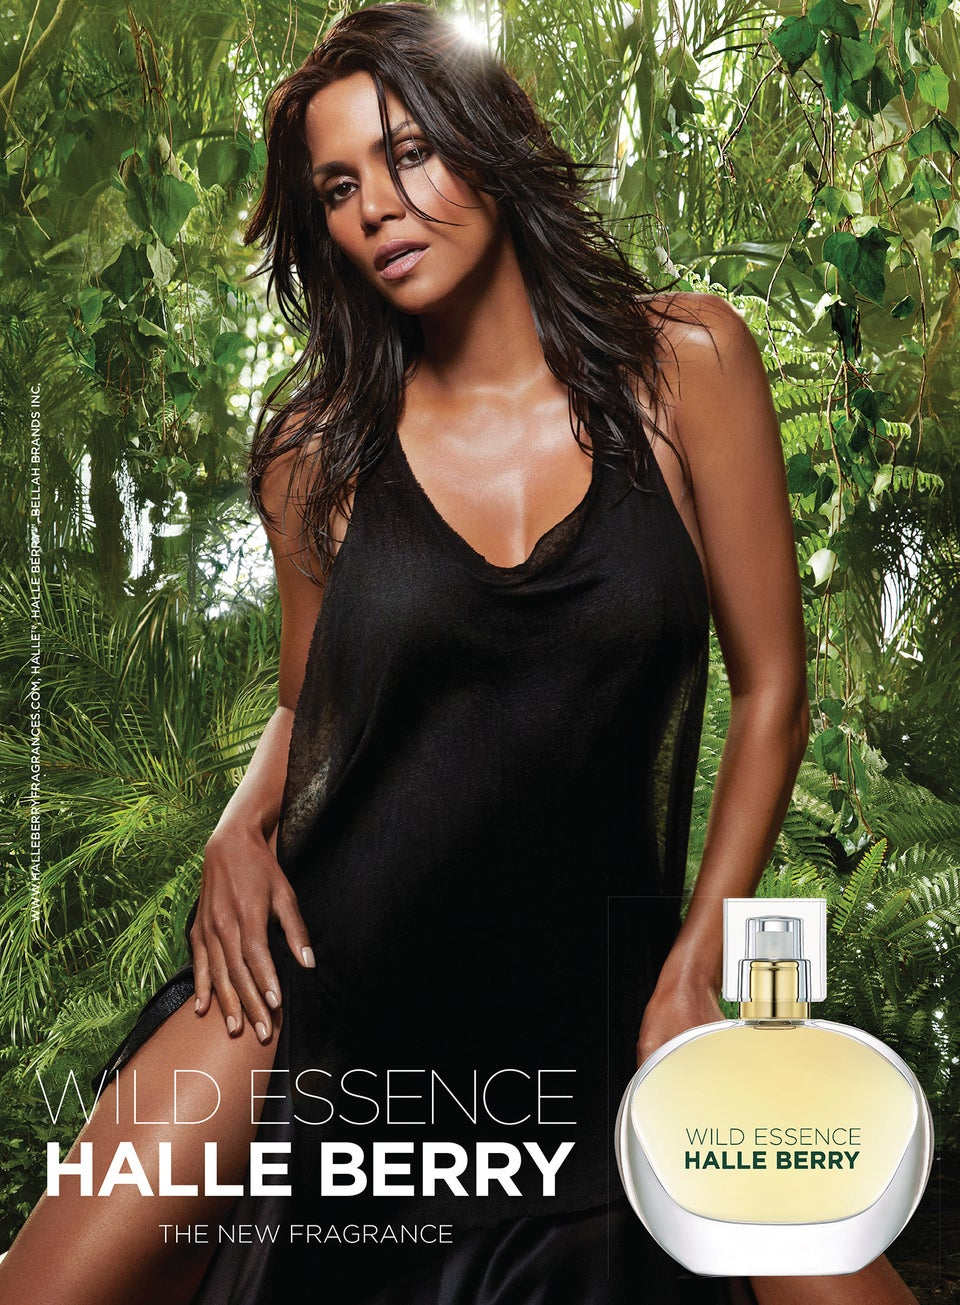 Halle Berry Launches New Fragrance, Wild Essence Halle Berry